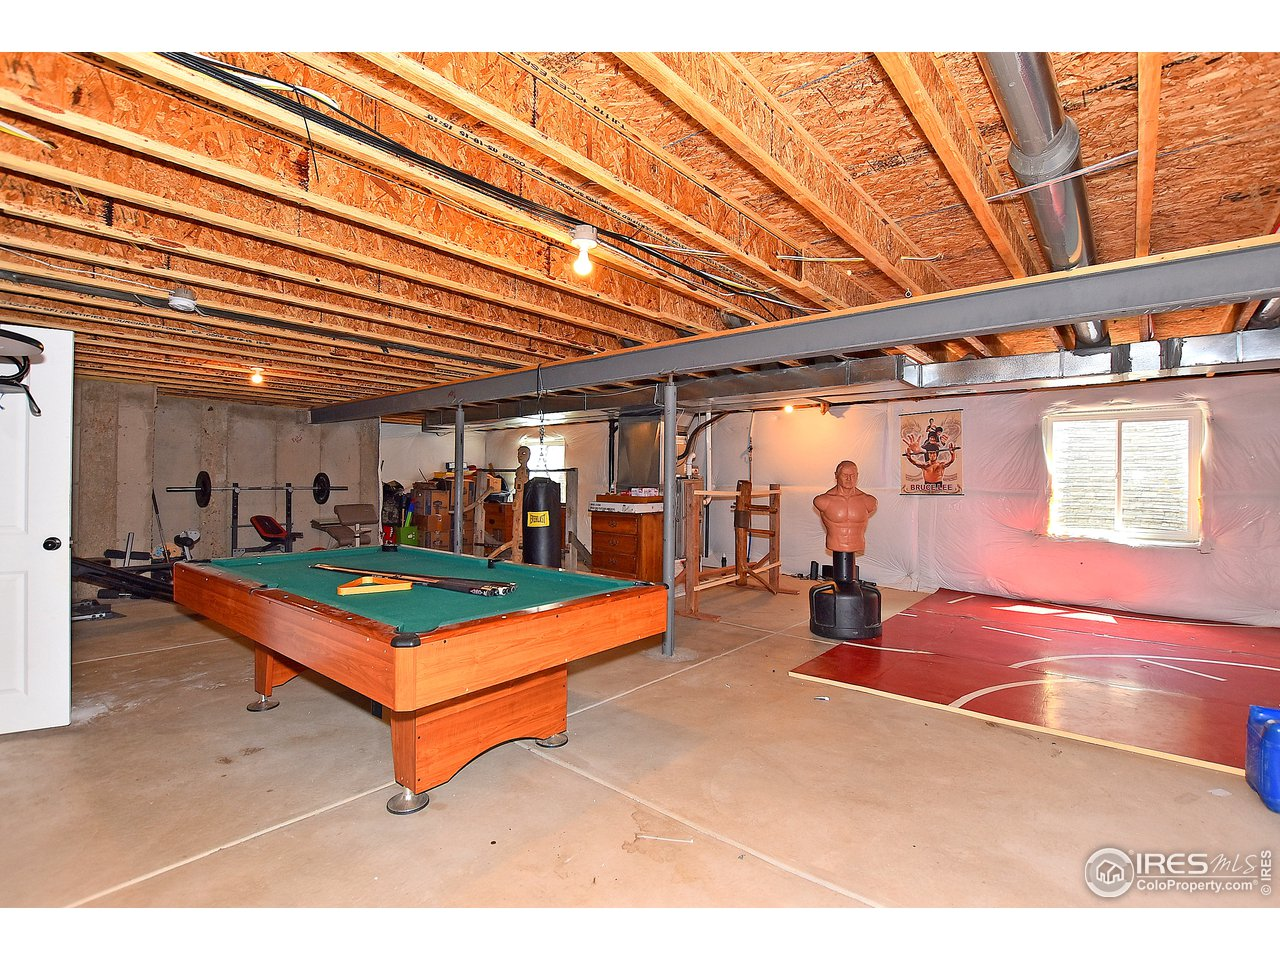 AMZING POSSIBILITIES FOR BASEMENT